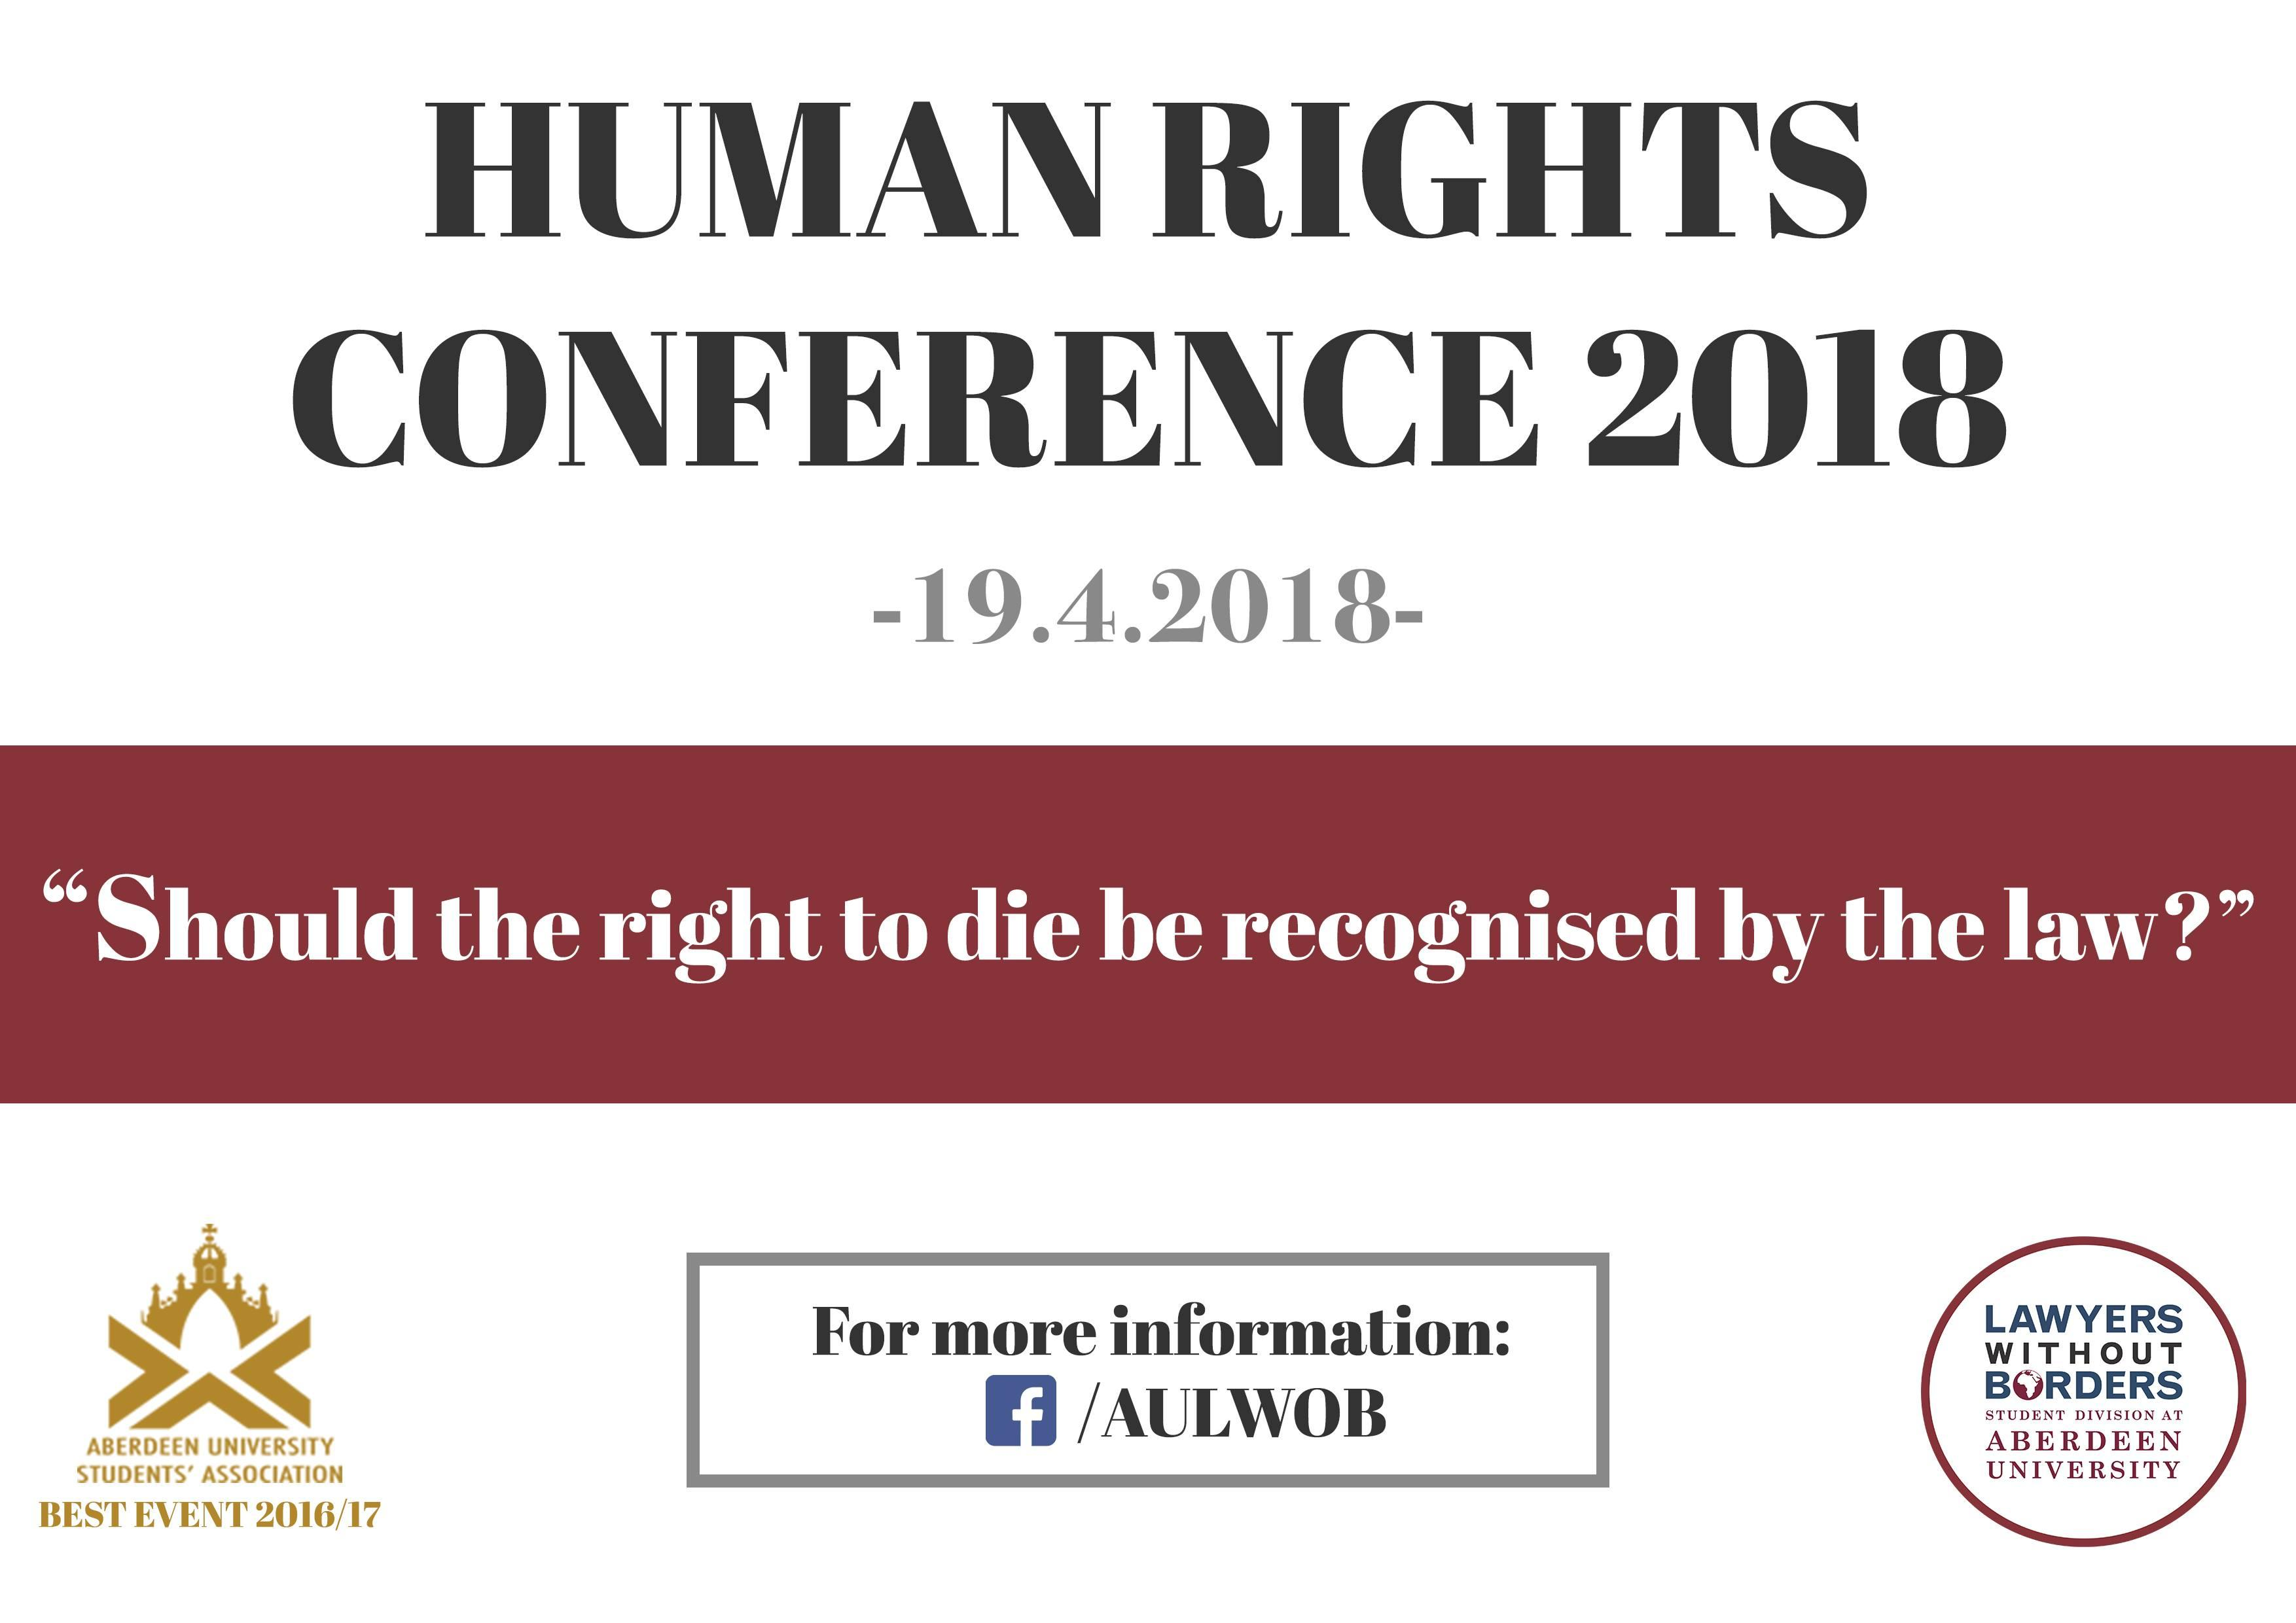 Human Rights Conference 2018